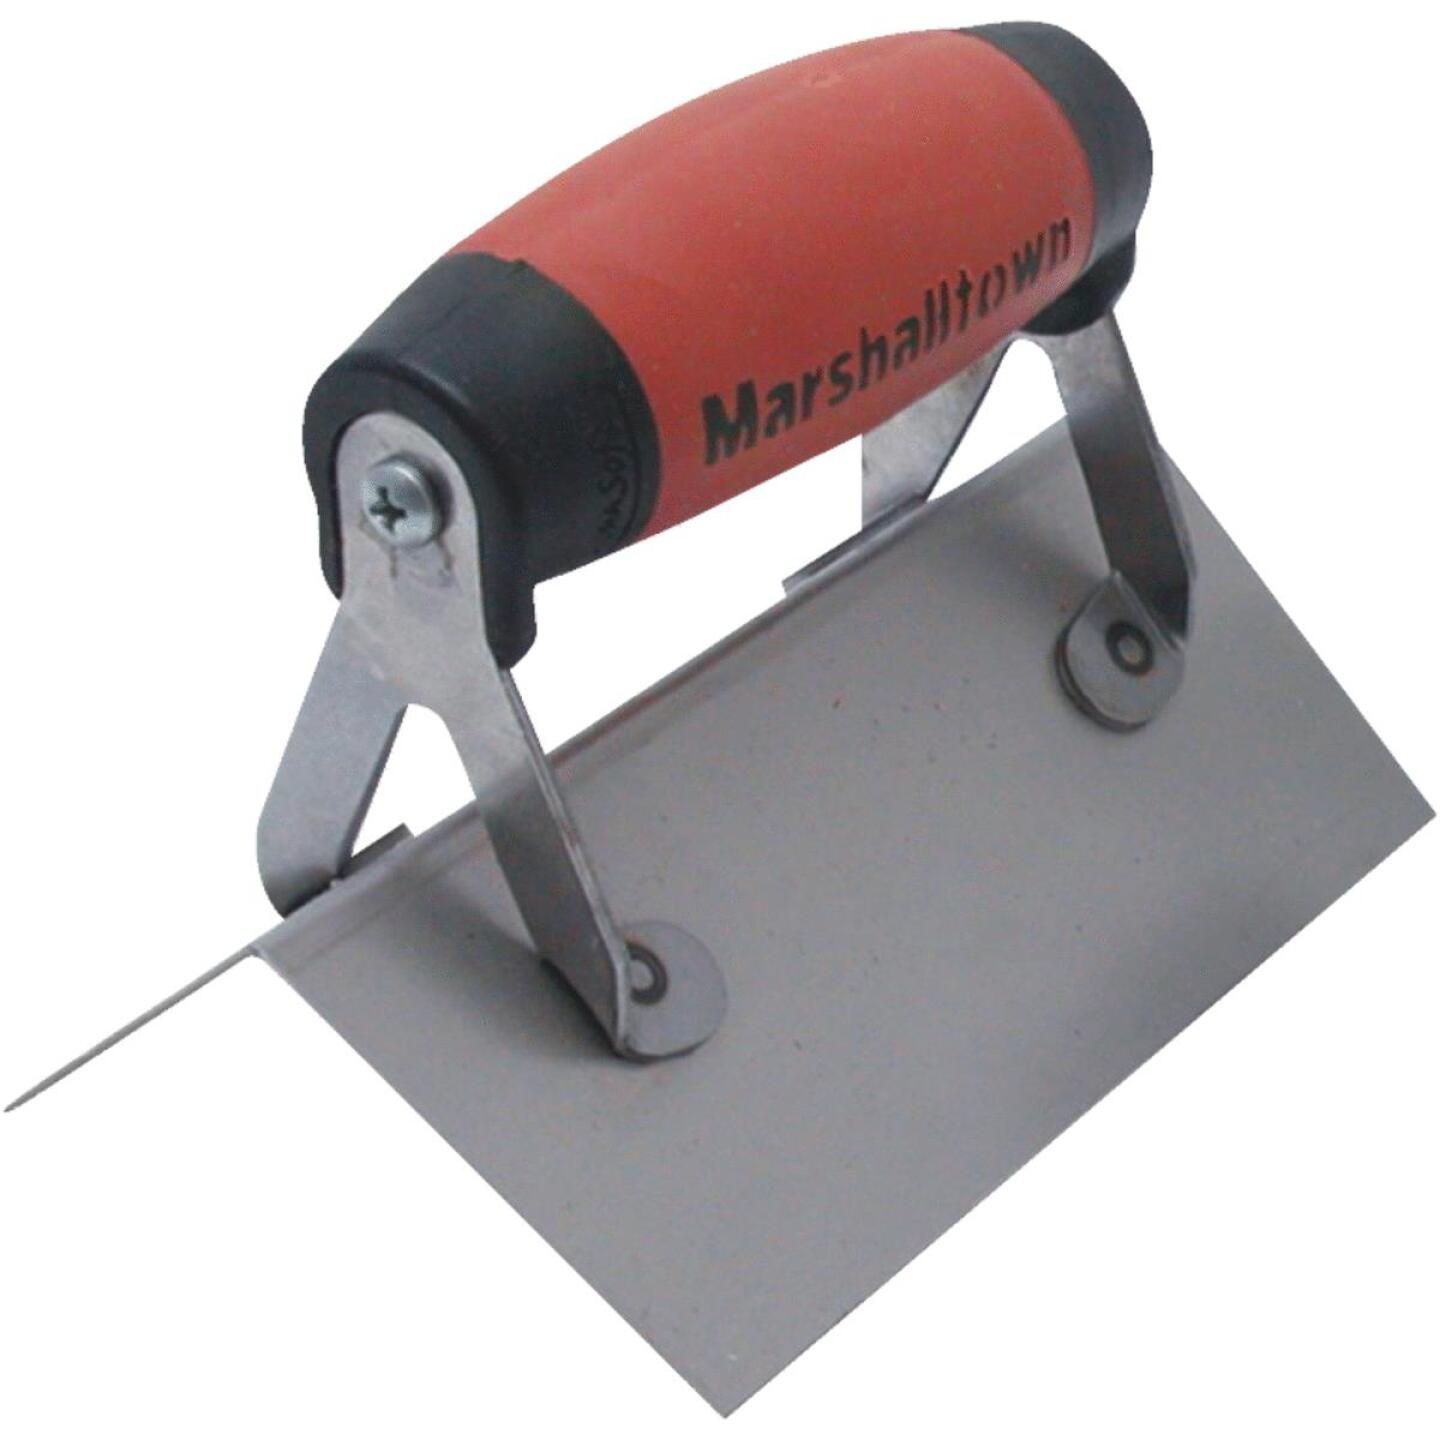 Marshalltown 2-1/2 In. x 6 In. Corner Finishing Trowel  with DuraSoft Handle Image 1